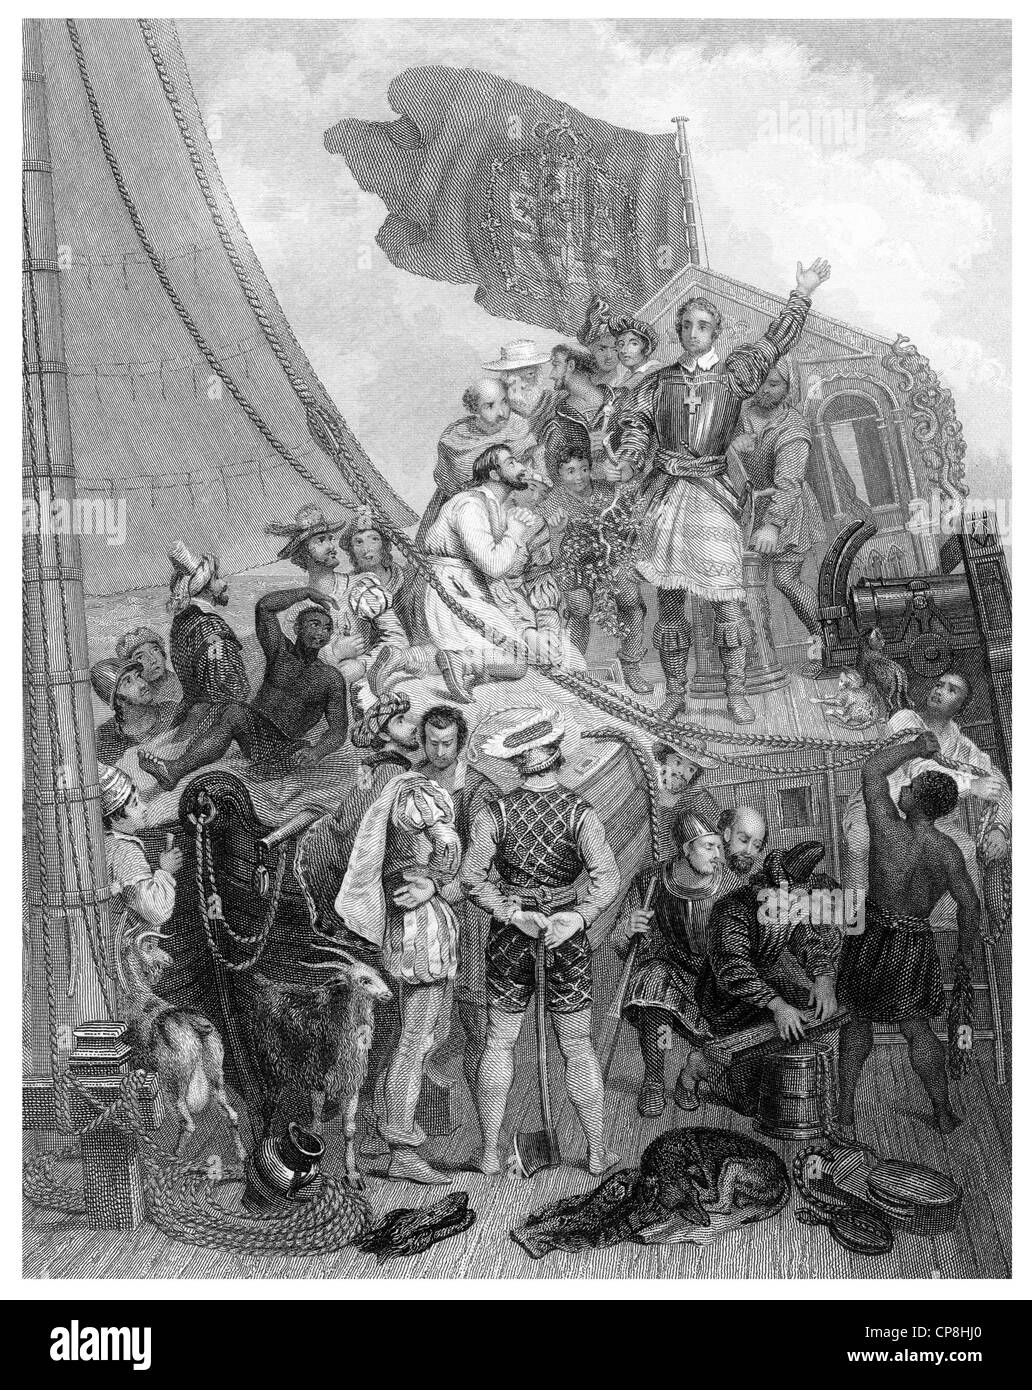 The Discovery of America in 1492 by the Genoese navigator Christopher Columbus, 1451-1506, Columbus discovering - Stock Image